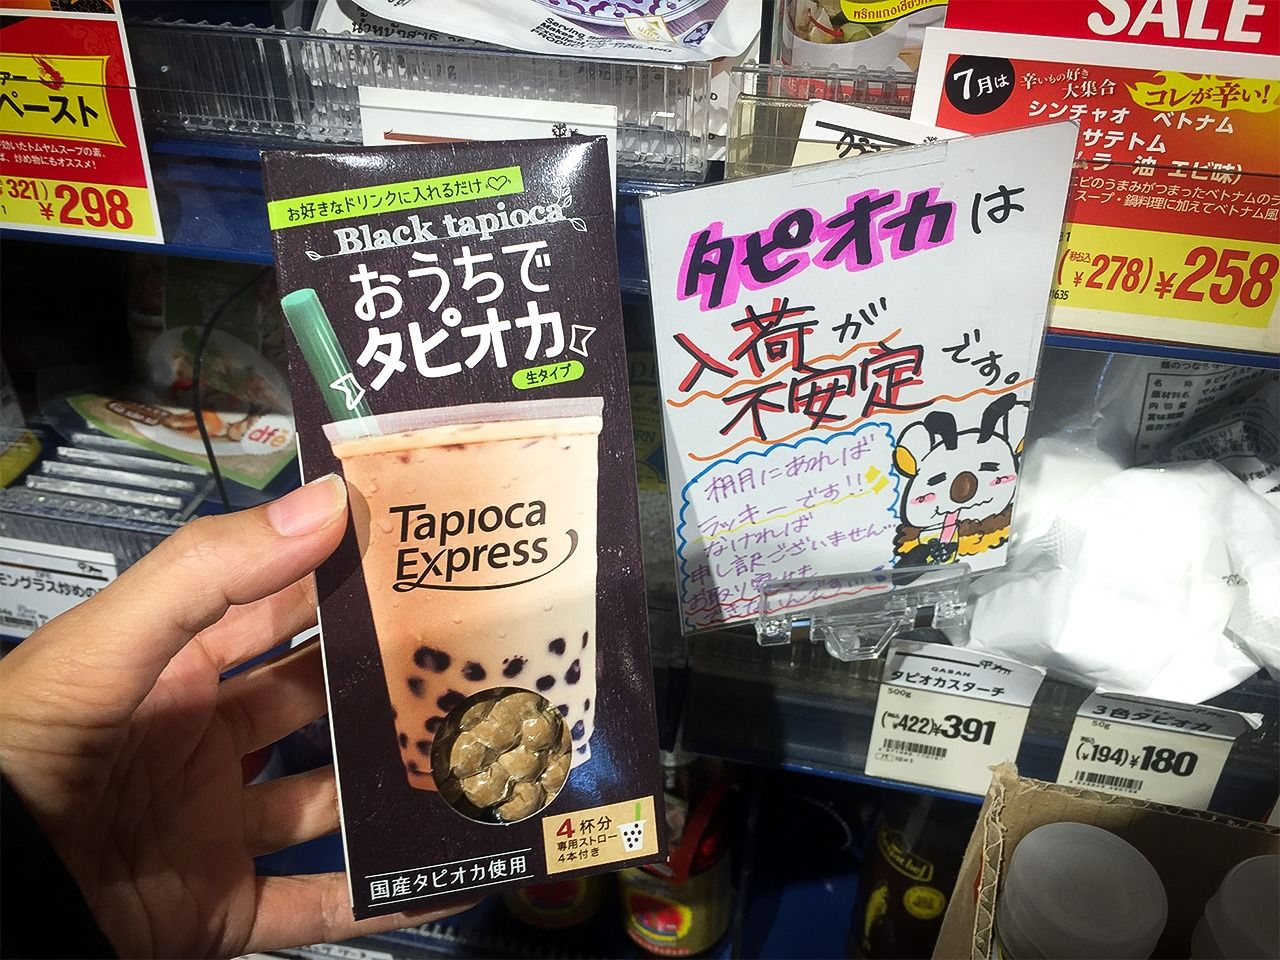 Tapioca pearls sold in a supermarket for making bubble tea at home.